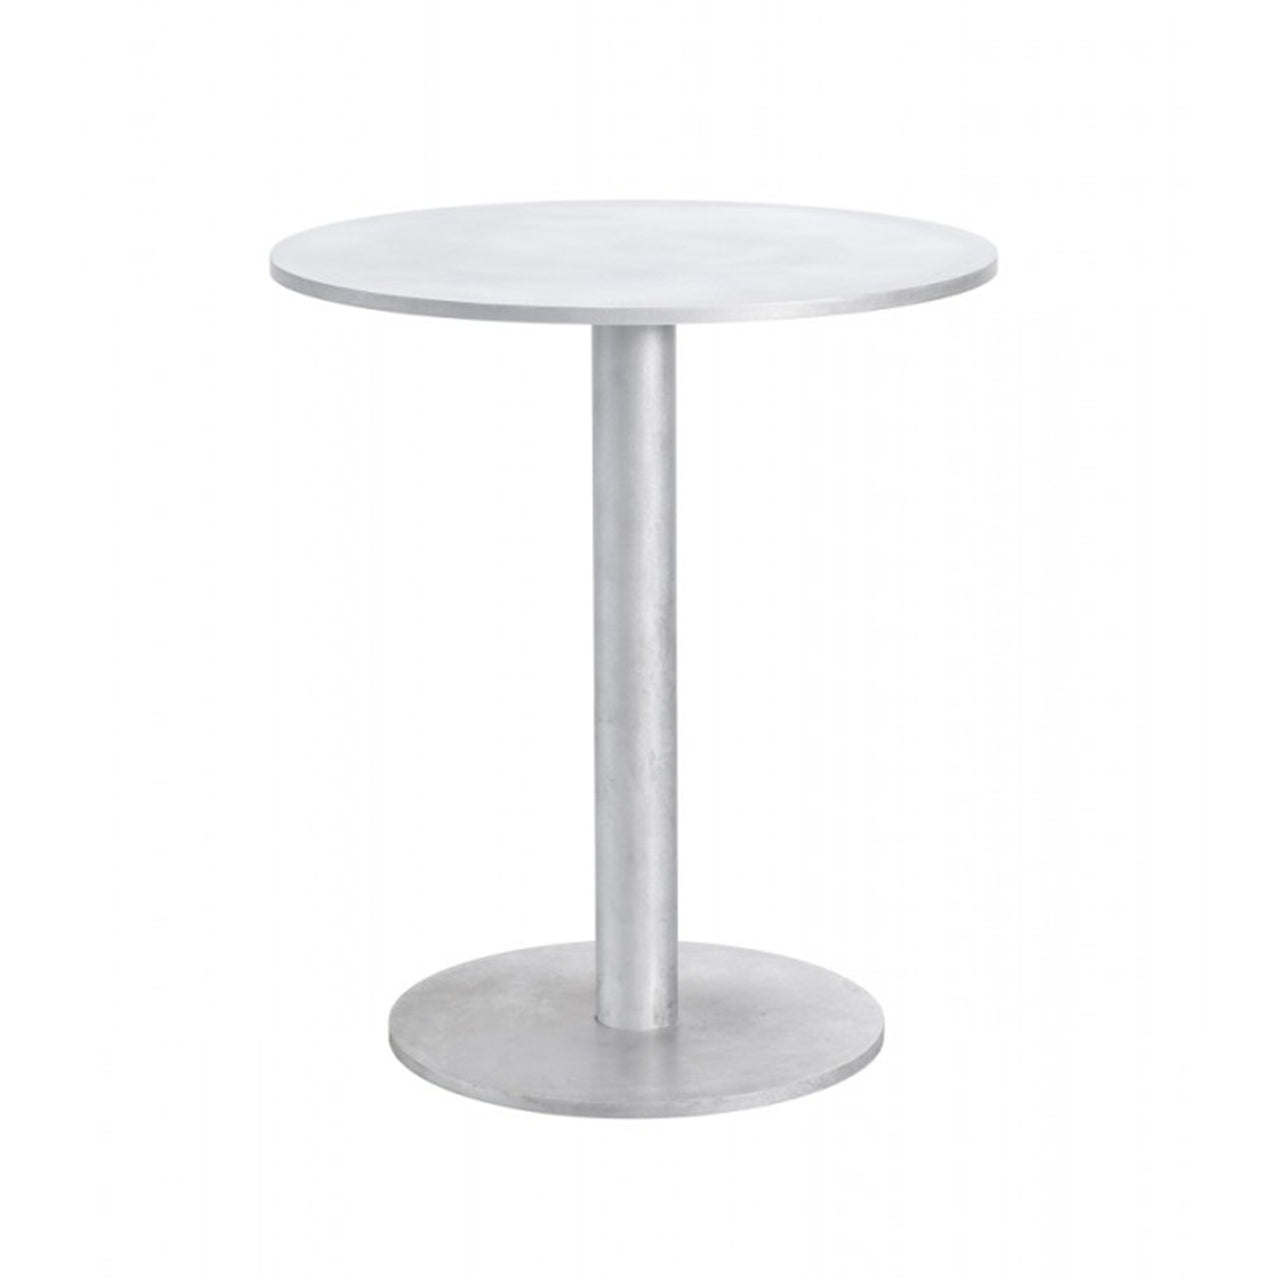 Round Table S: Aluminium